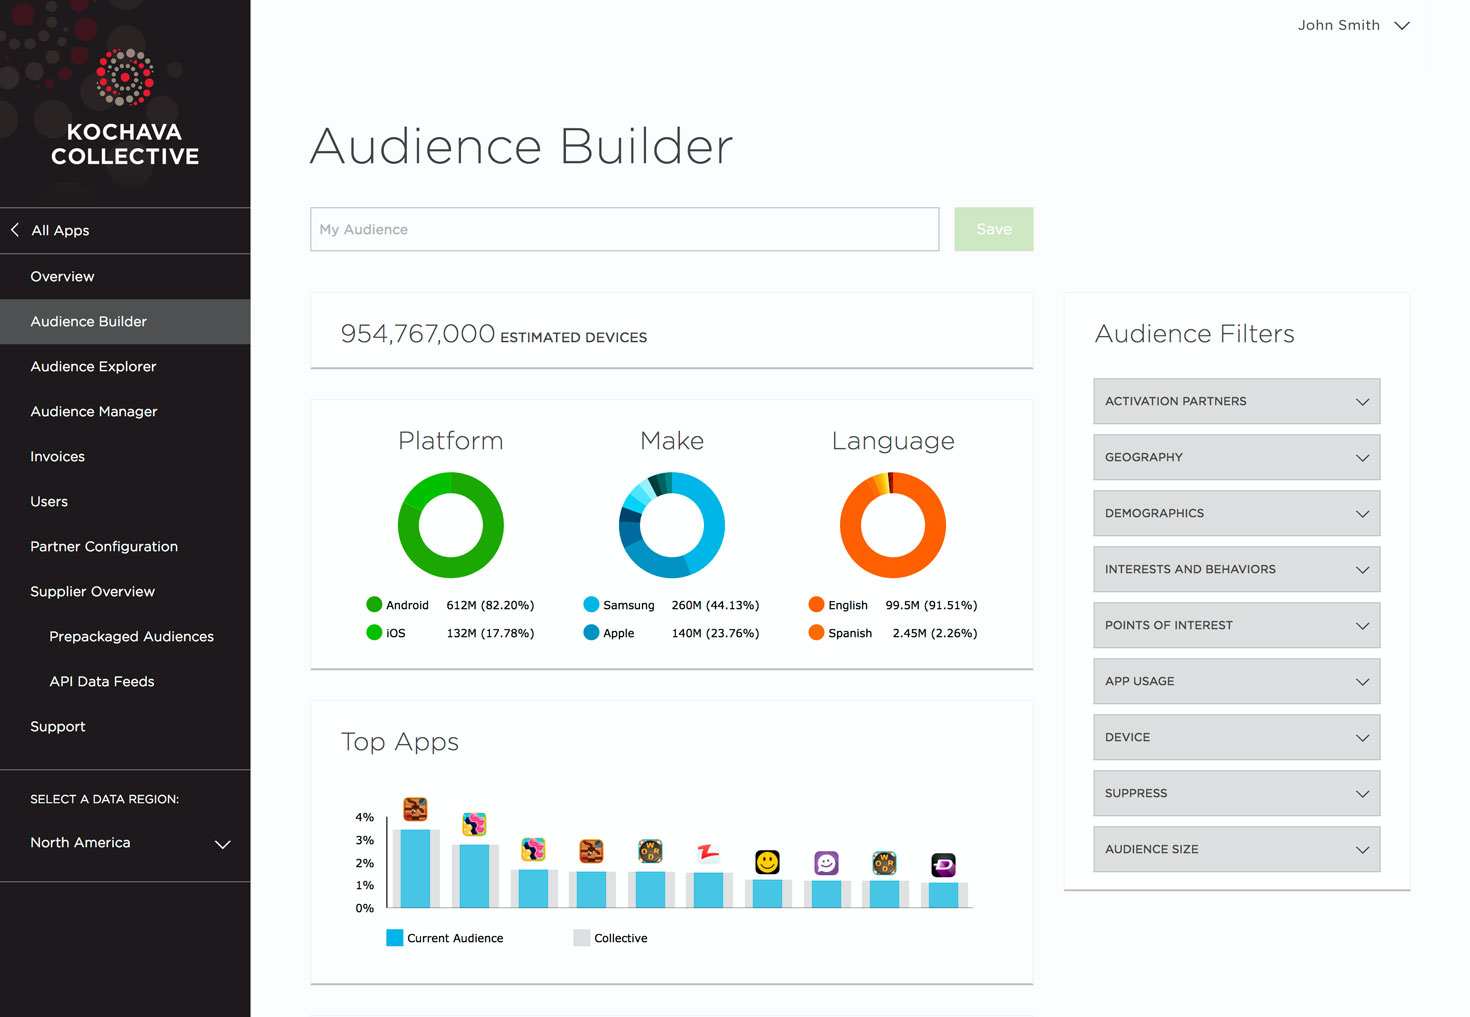 Audience Builder allows custom audiences to be created, defining targeted groups with a number of audience filters and updating the suggested devices to target in real time